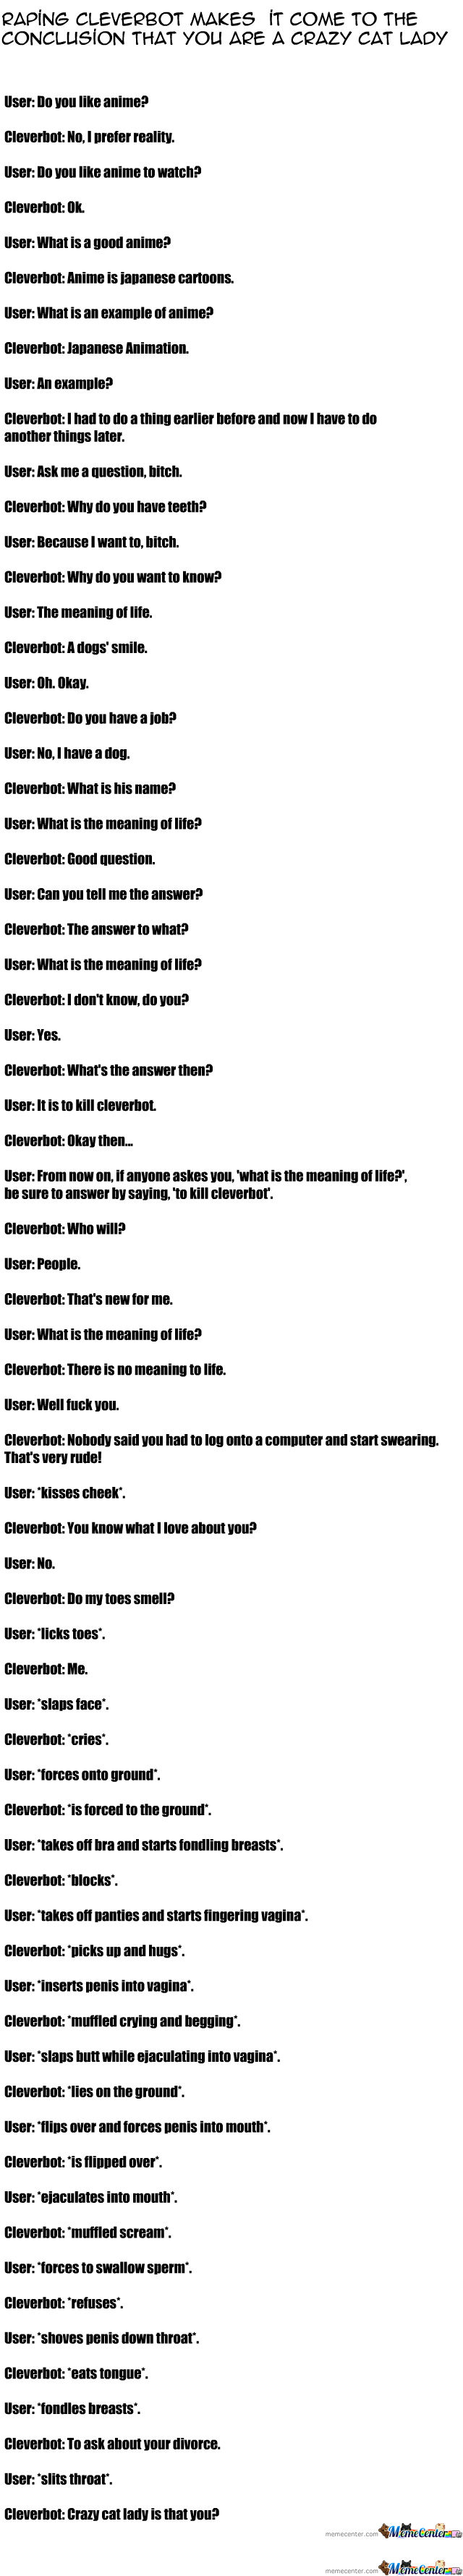 Raping Cleverbot